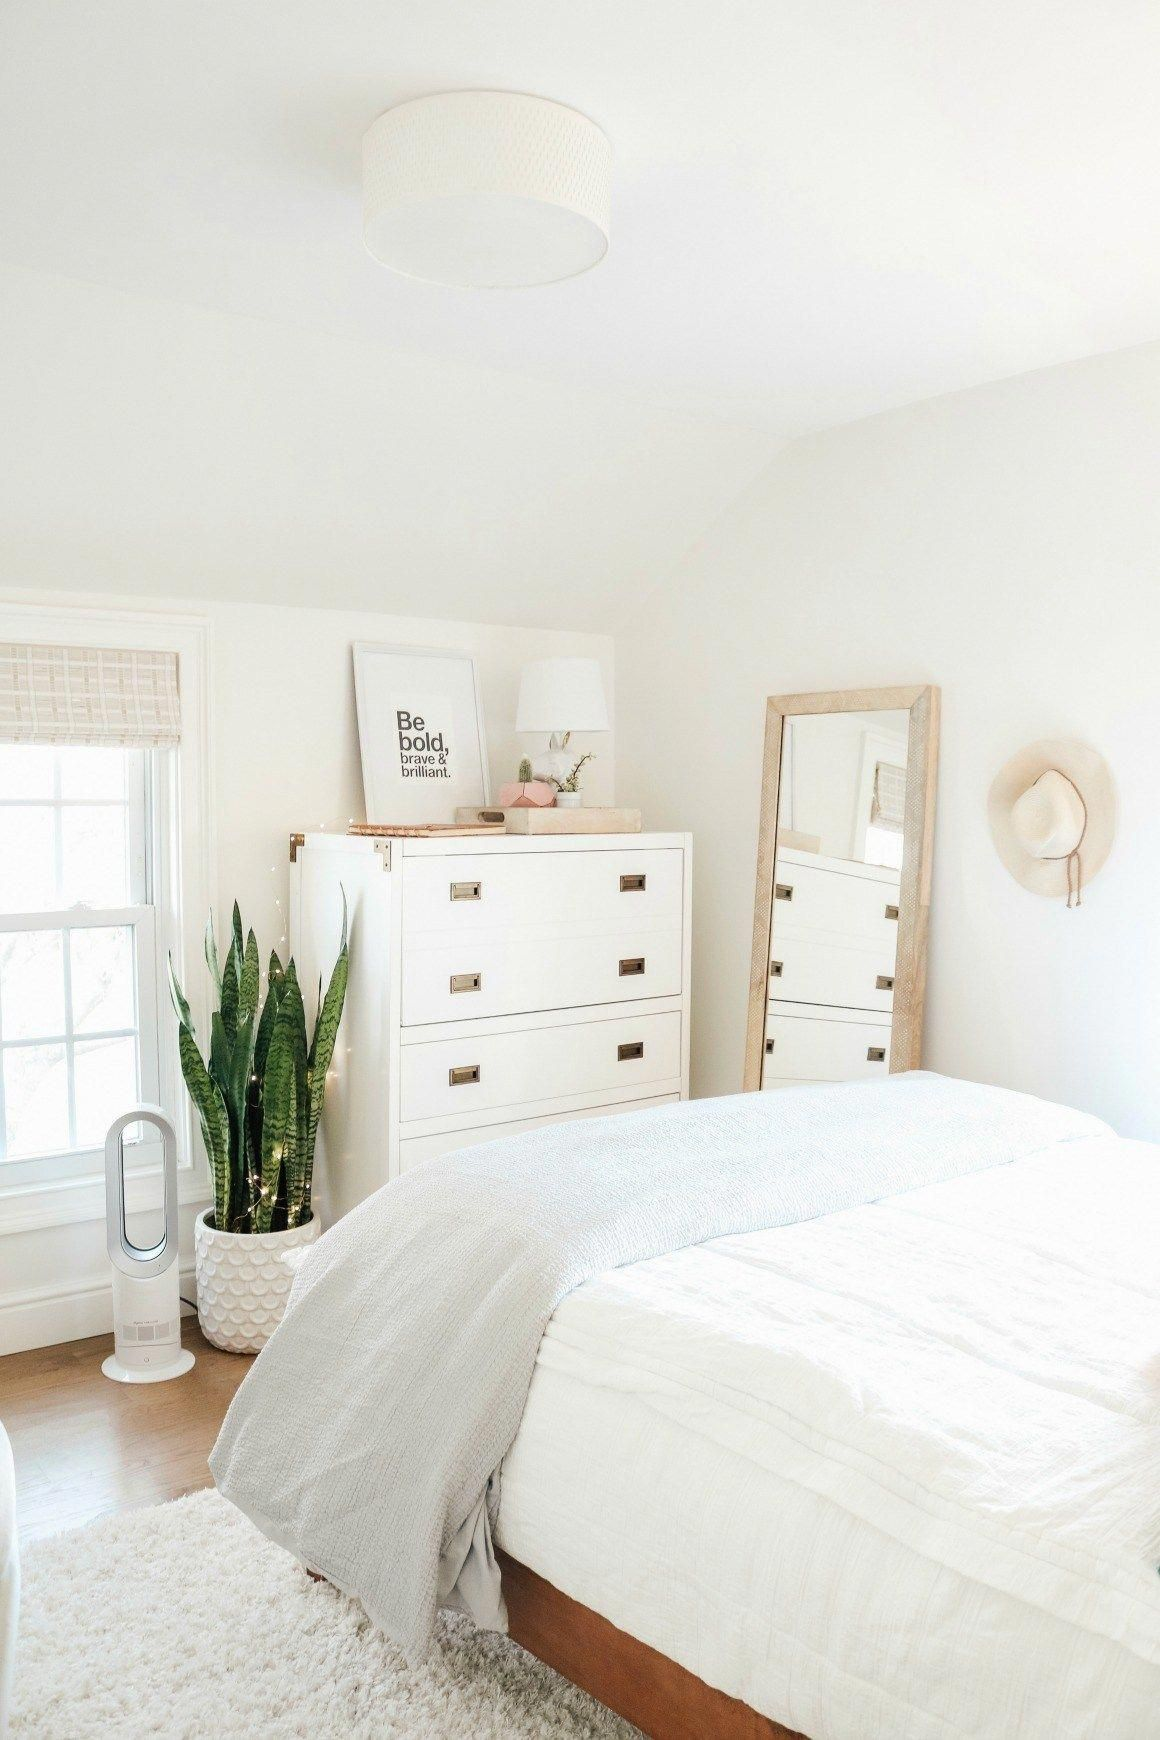 Small Girls Bedroom Makeover with Wallpaper Accent Wall - Nesting With Grace